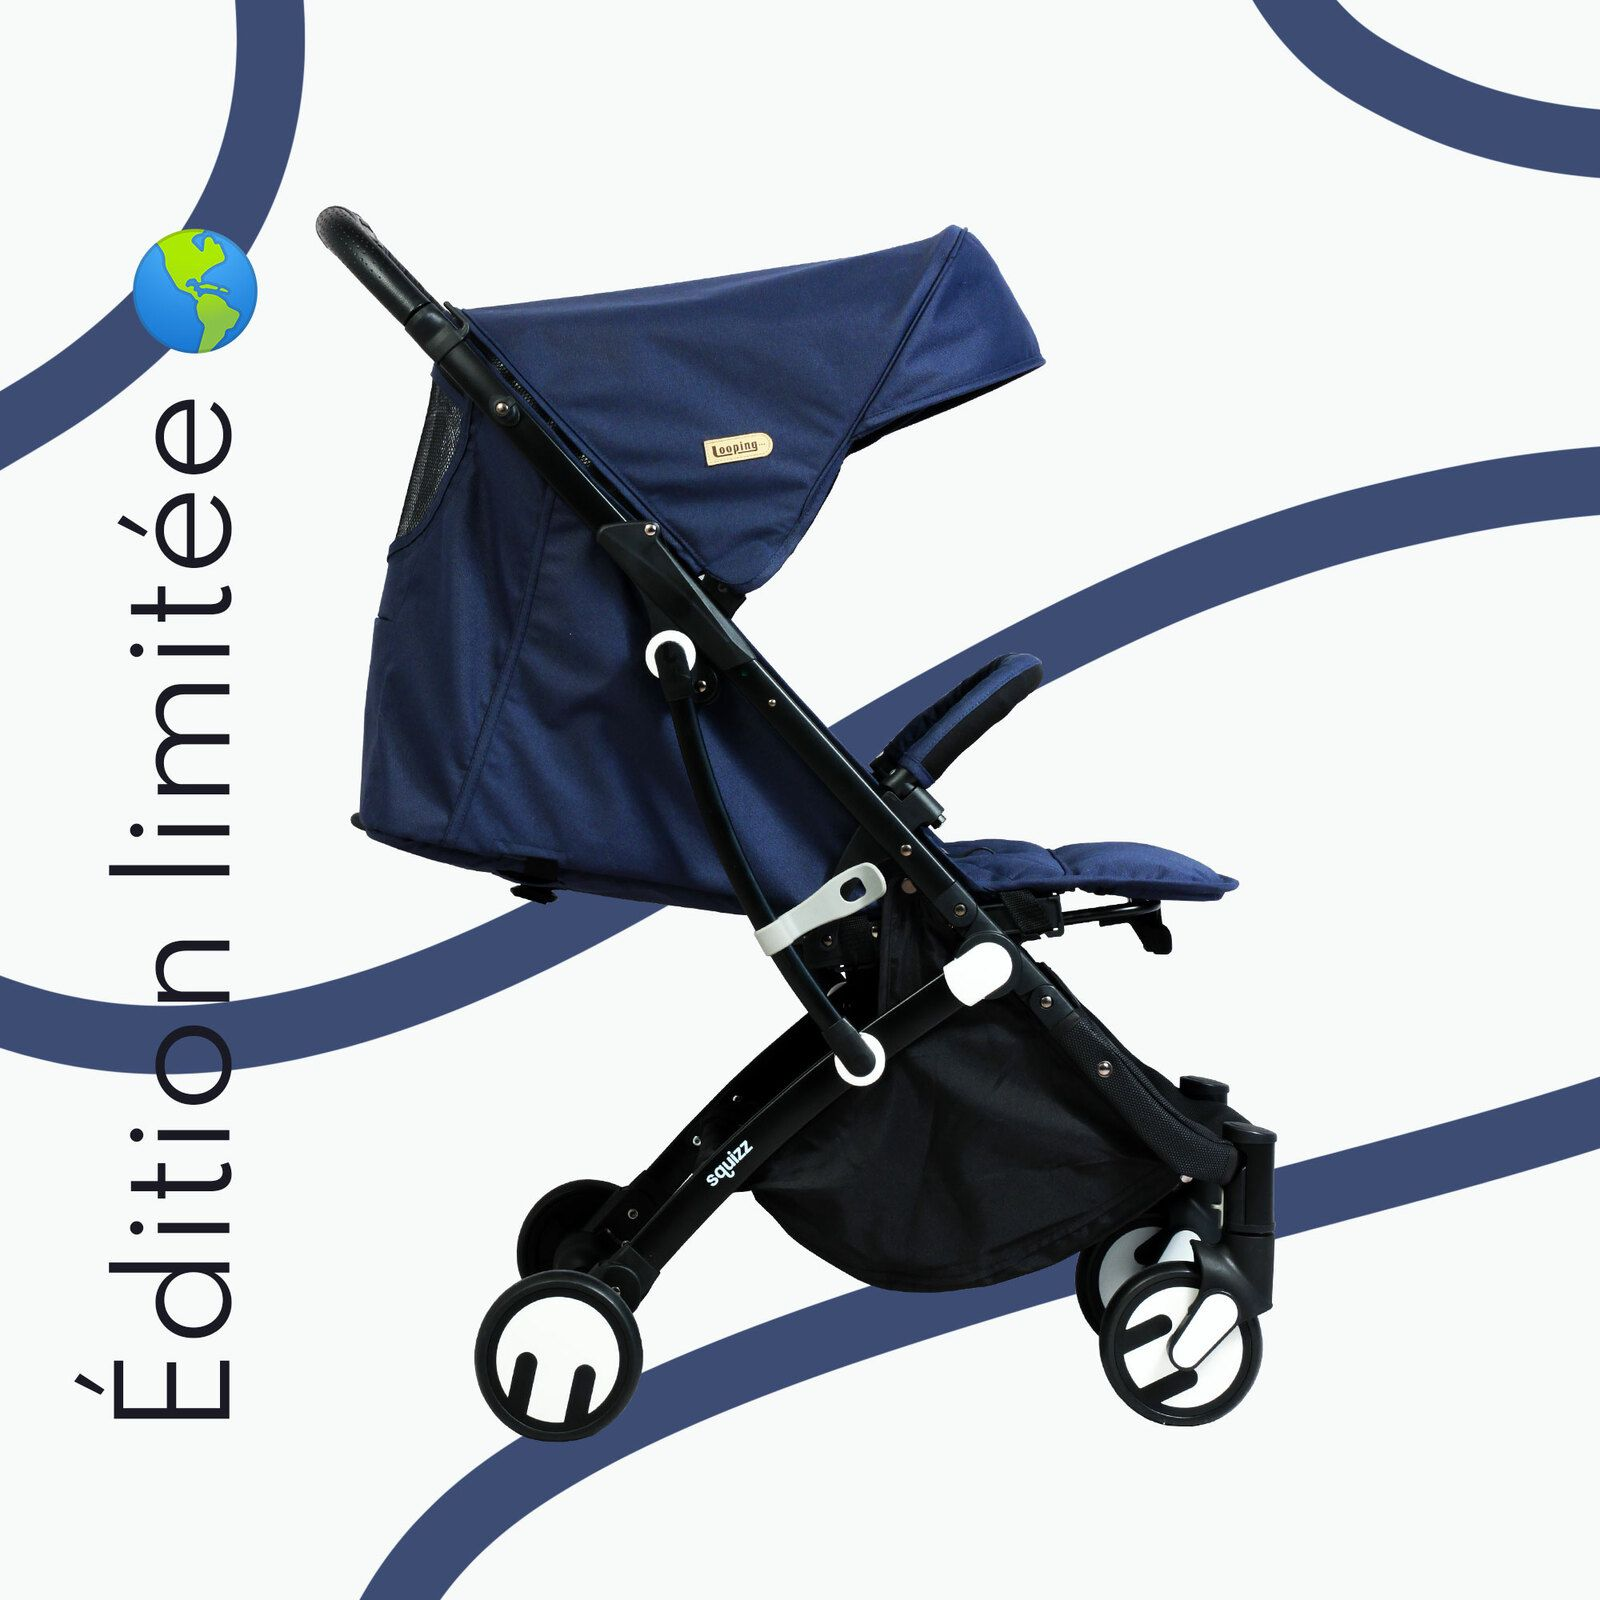 SQUIZZ 3 EDITION LIMITEE ECO RESPONSABLE NAVY BLUE